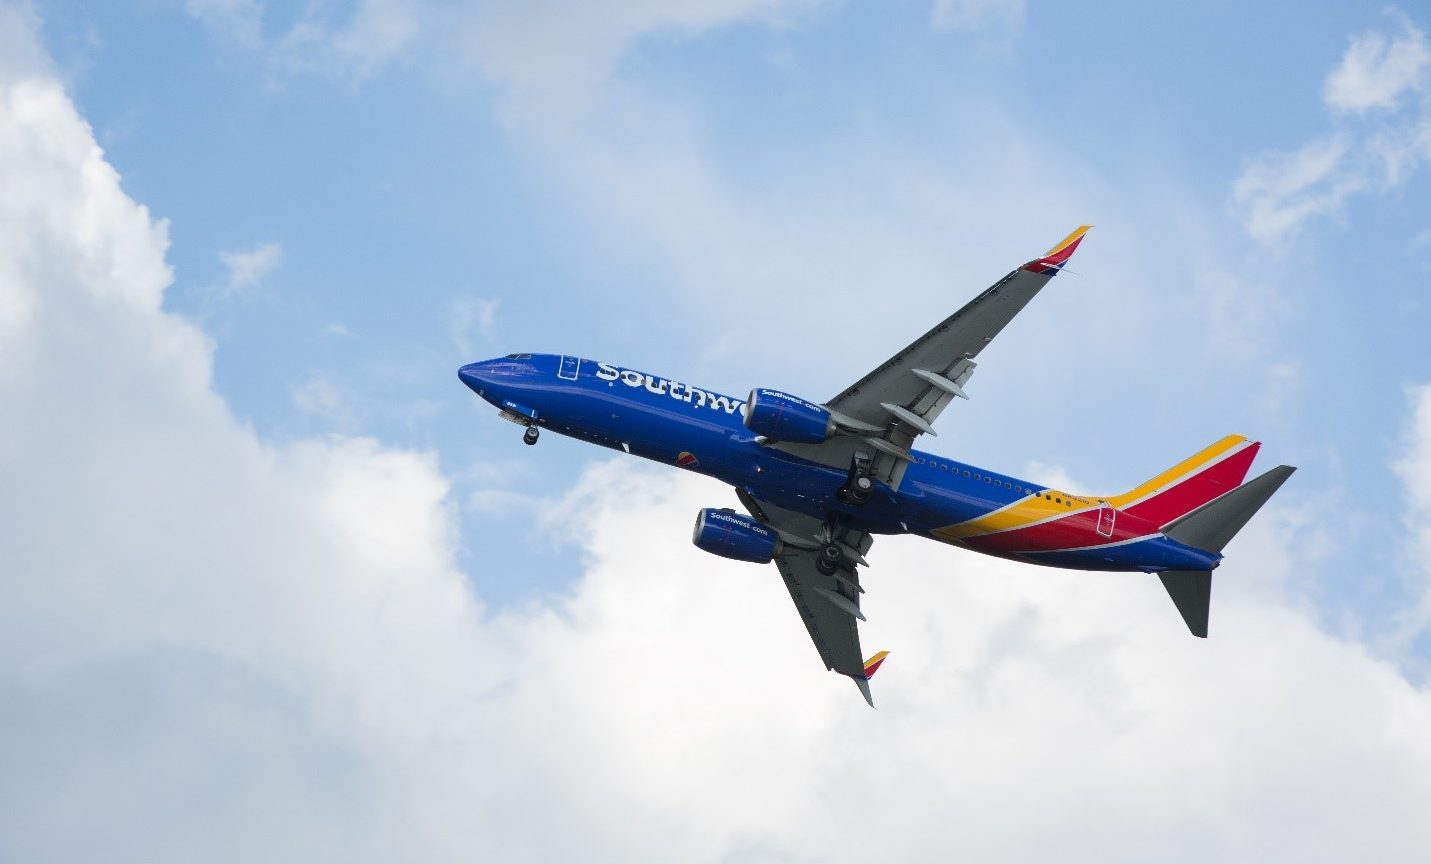 Things to Know Before Flying Southwest